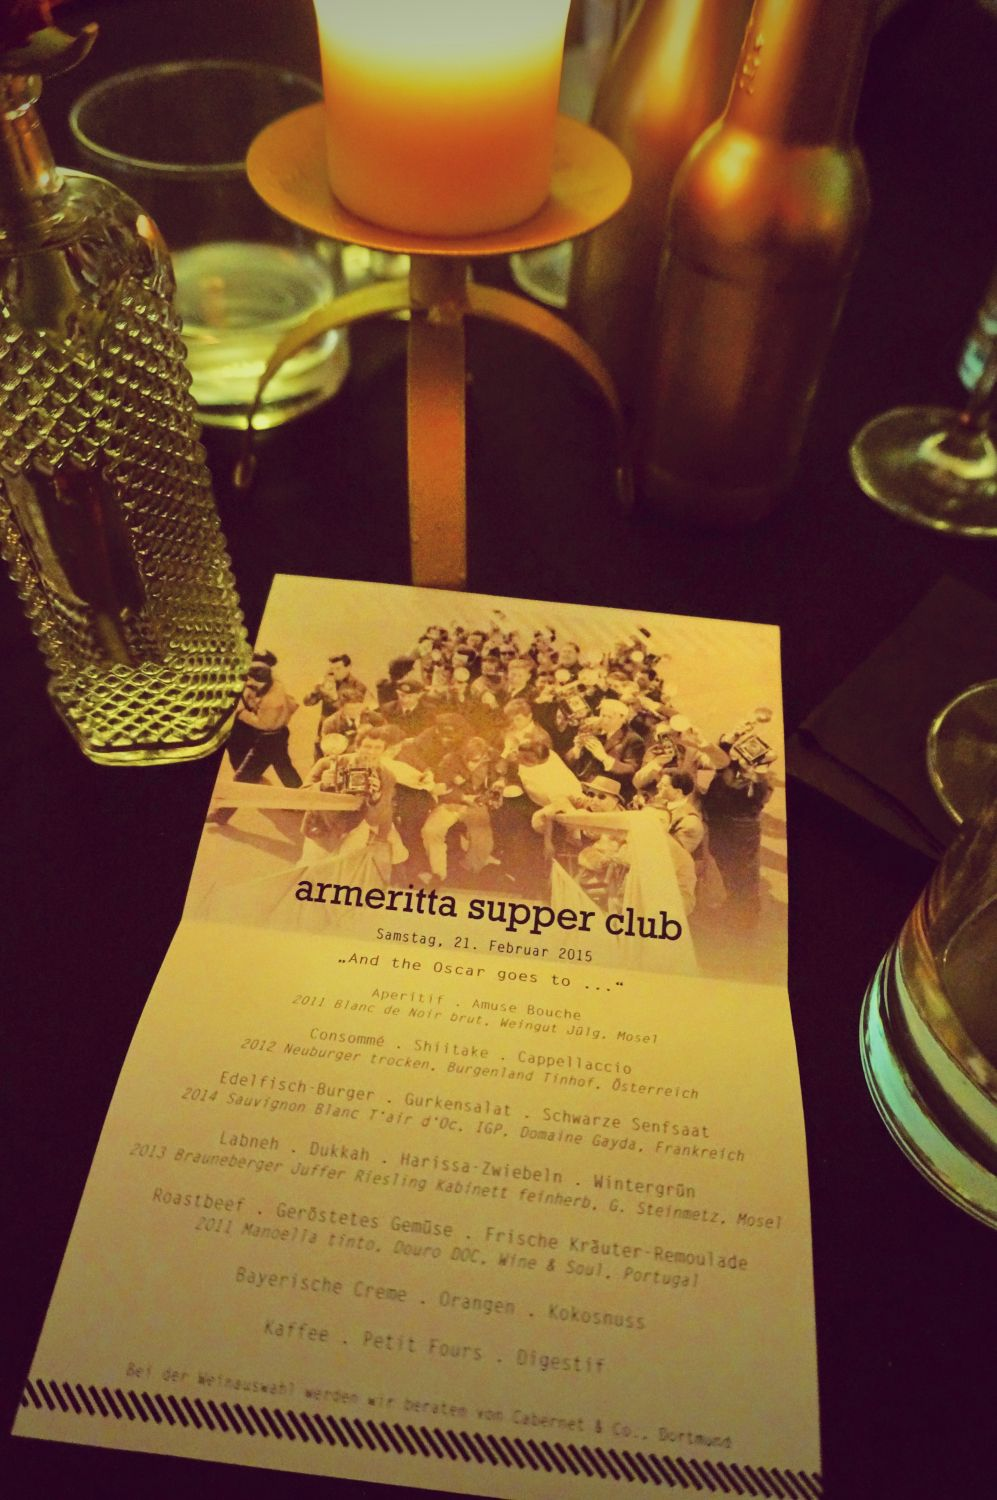 Armeritta Supper Club Private Dinning Club In Dortmund Ruhrgebiet